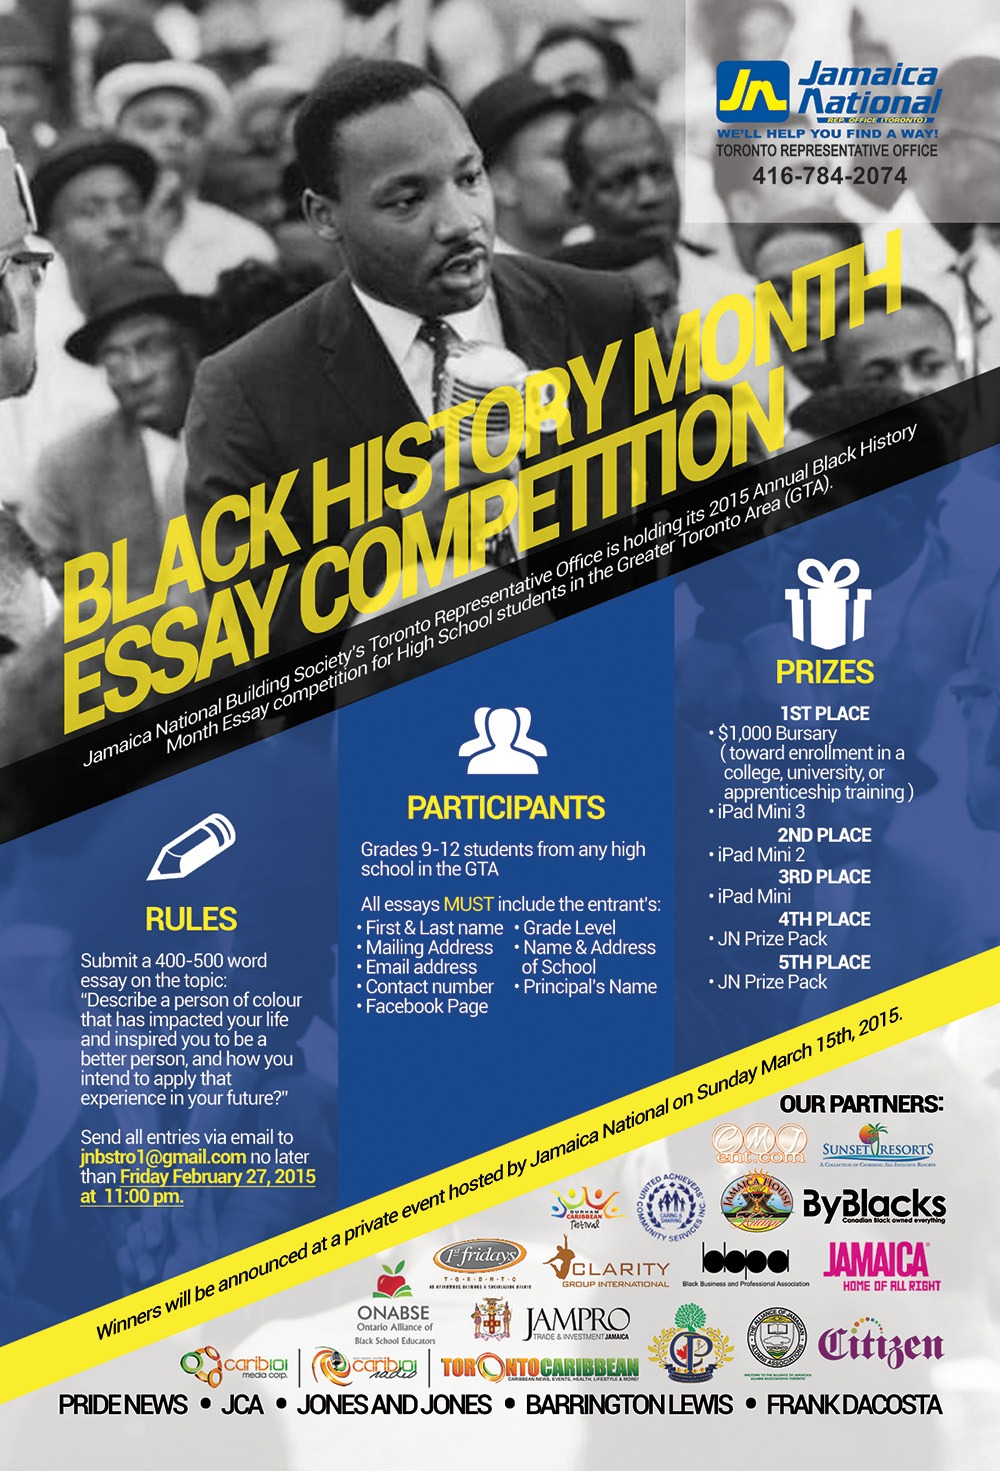 black history month 2015 meticulous design studios flyer jn blackhistorymonth 3